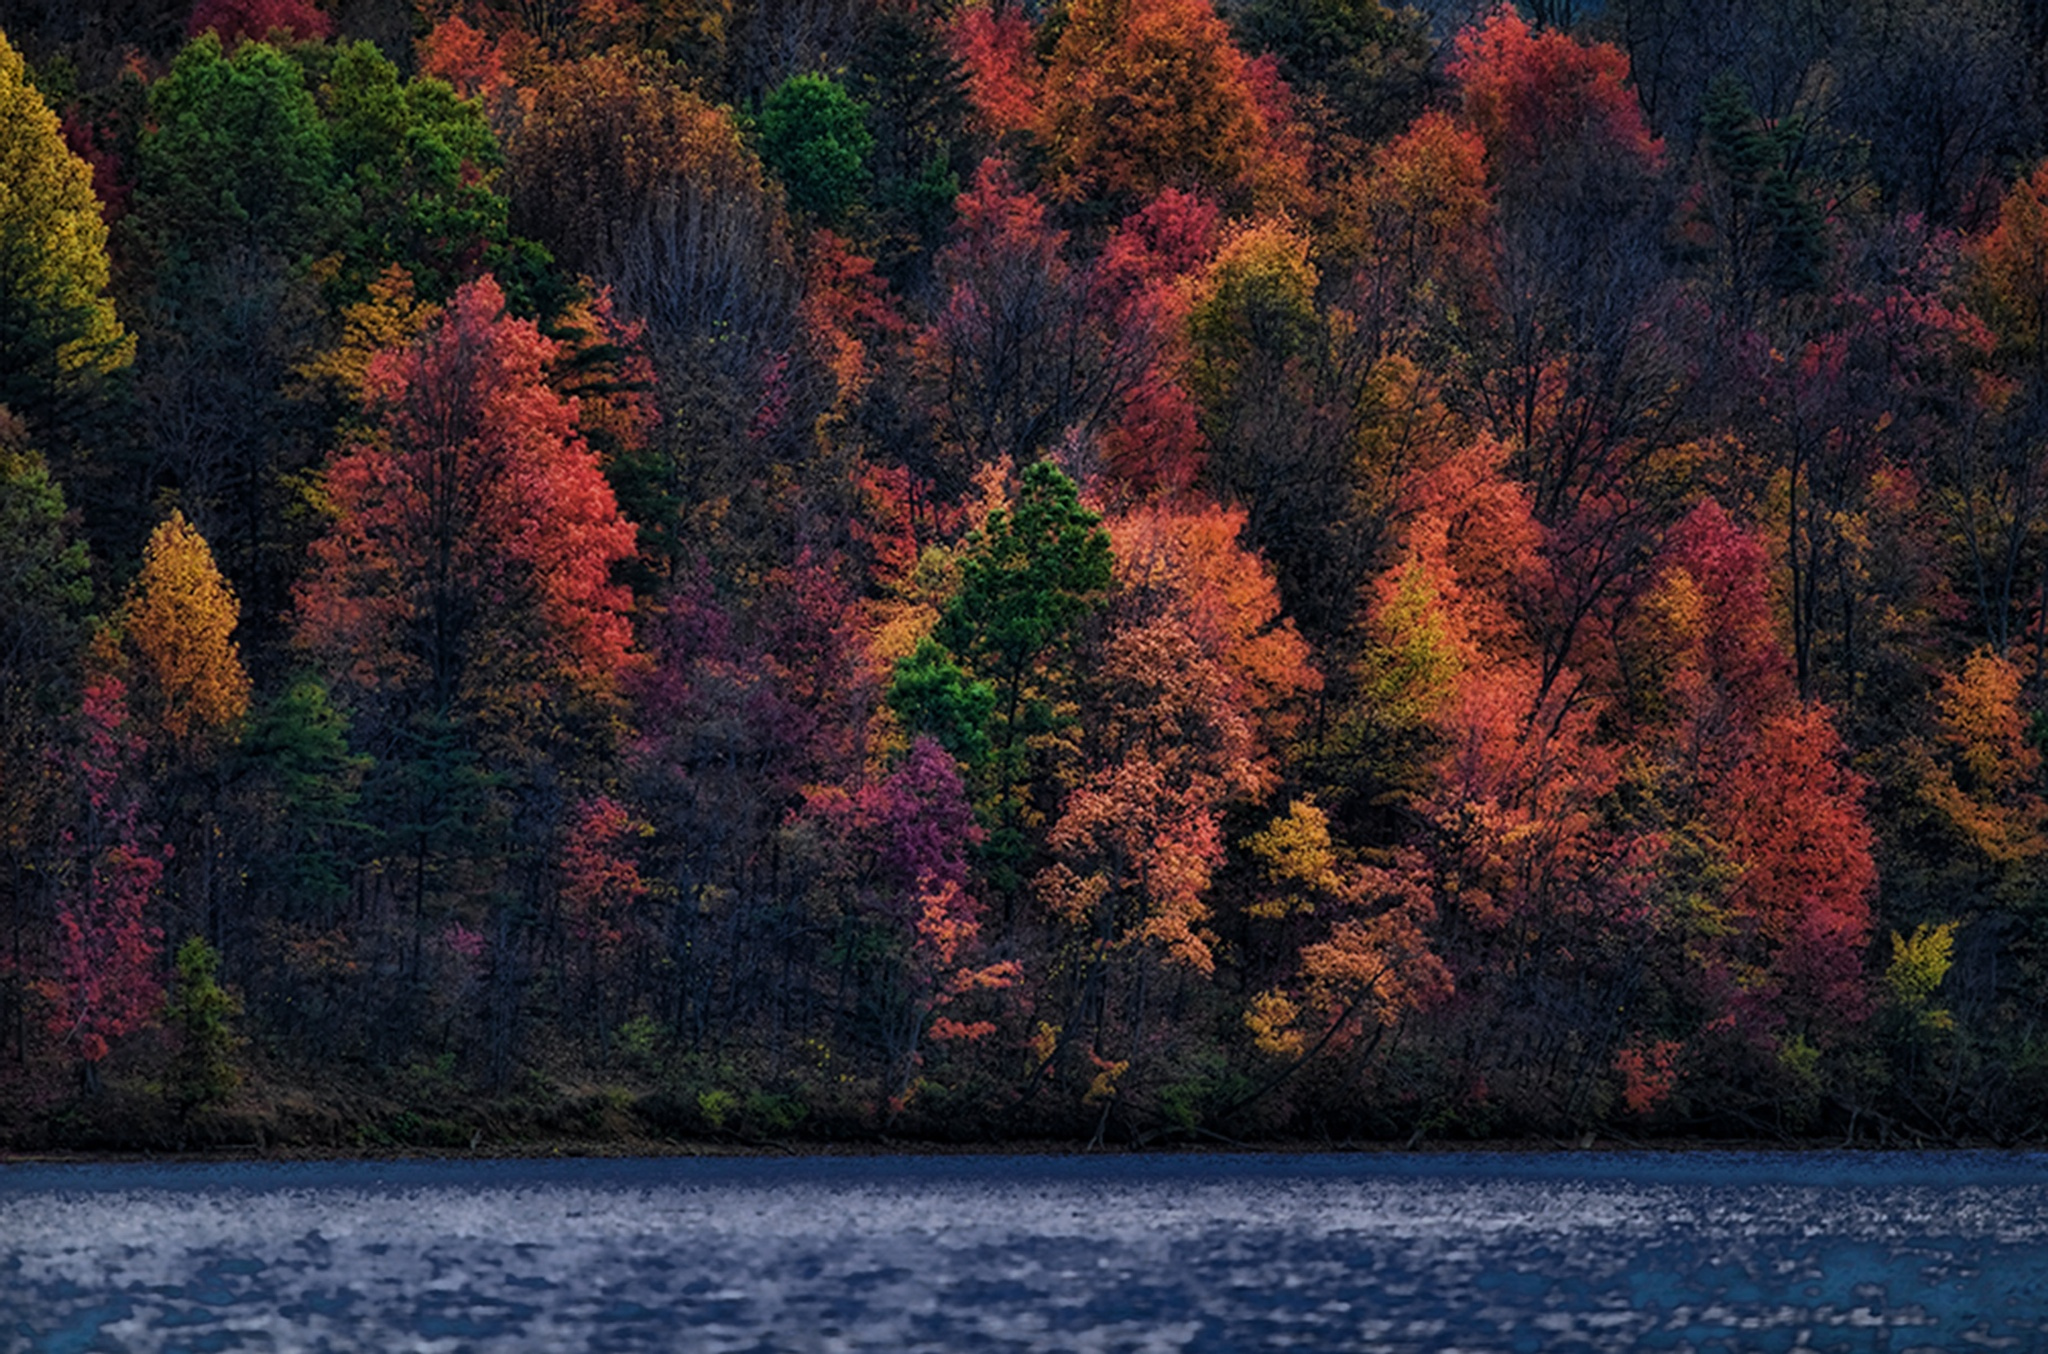 lake and mountain in fall colors